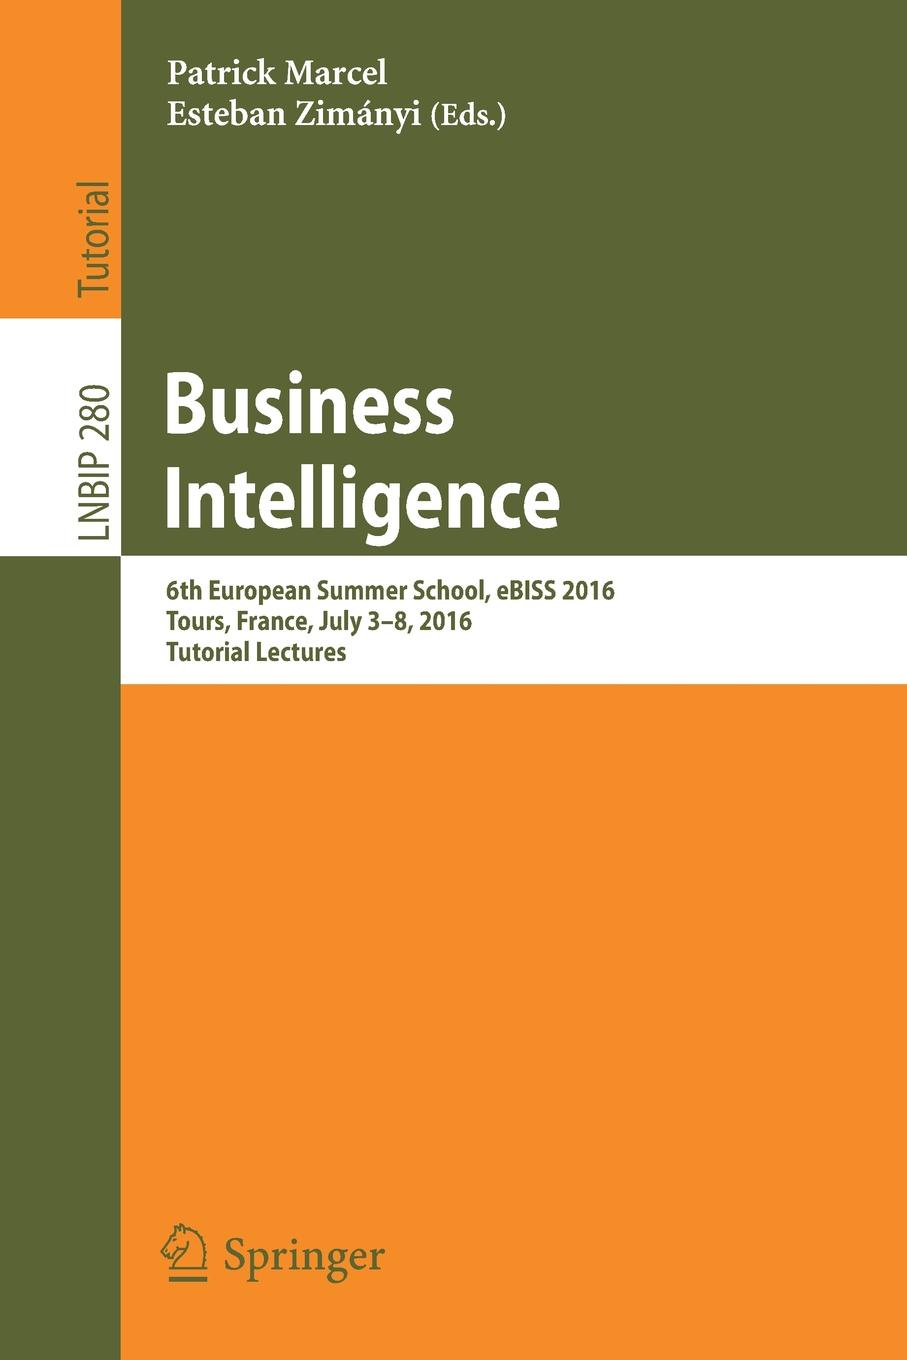 Business Intelligence. 6th European Summer School, eBISS 2016, Tours, France, July 3-8, 2016, Tutorial Lectures bénabar tours